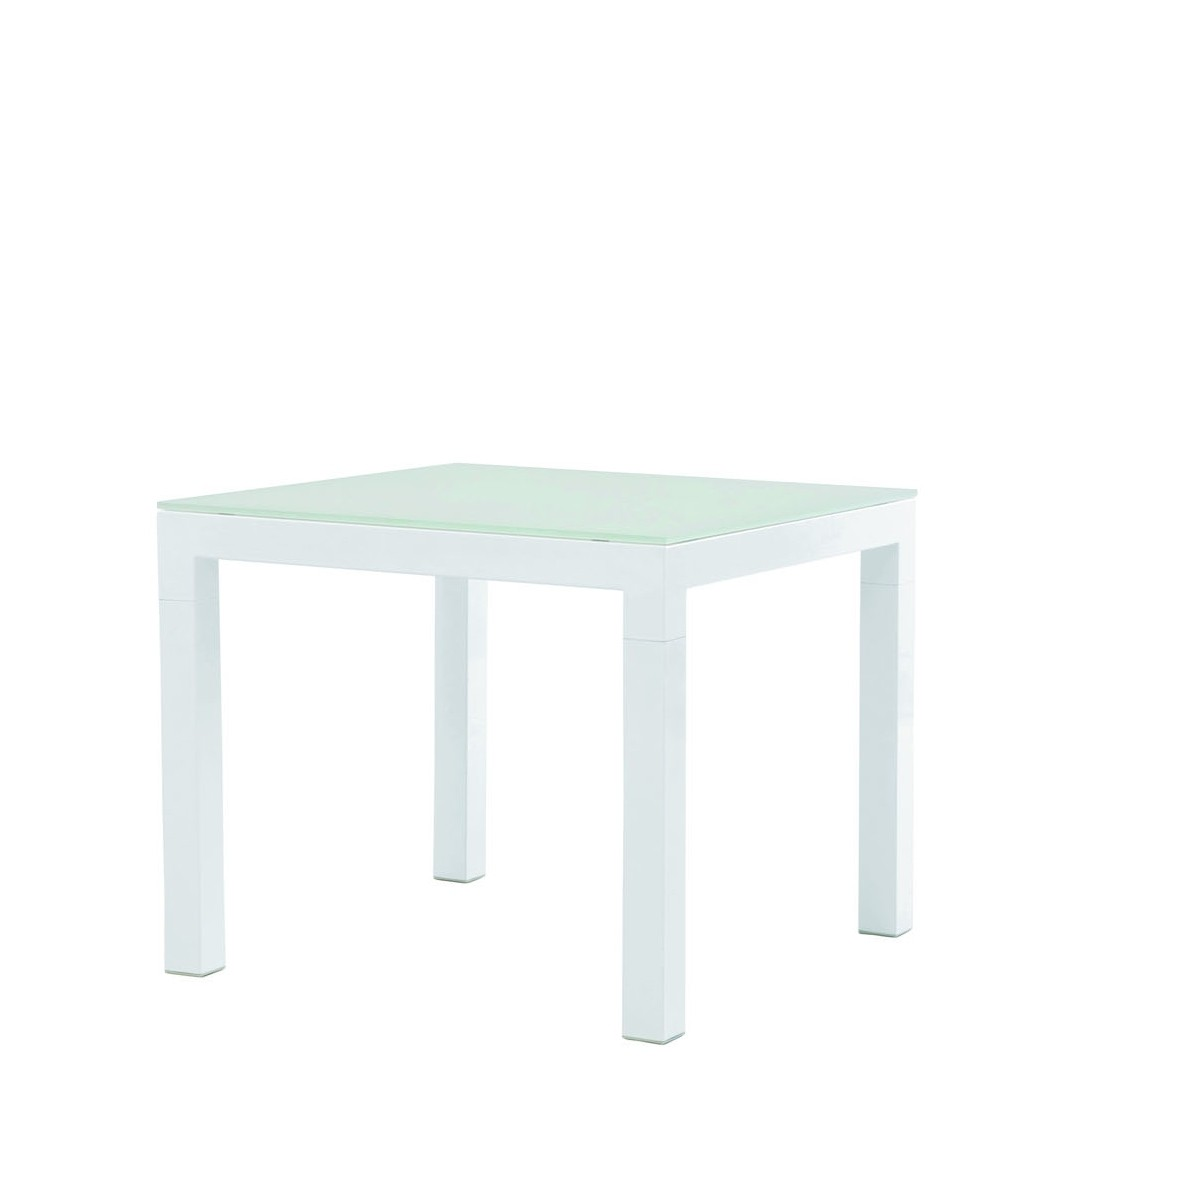 Casa Taupe Carre Table Espace Carr 90x90 ExtensibleStunning gf7Yb6yv